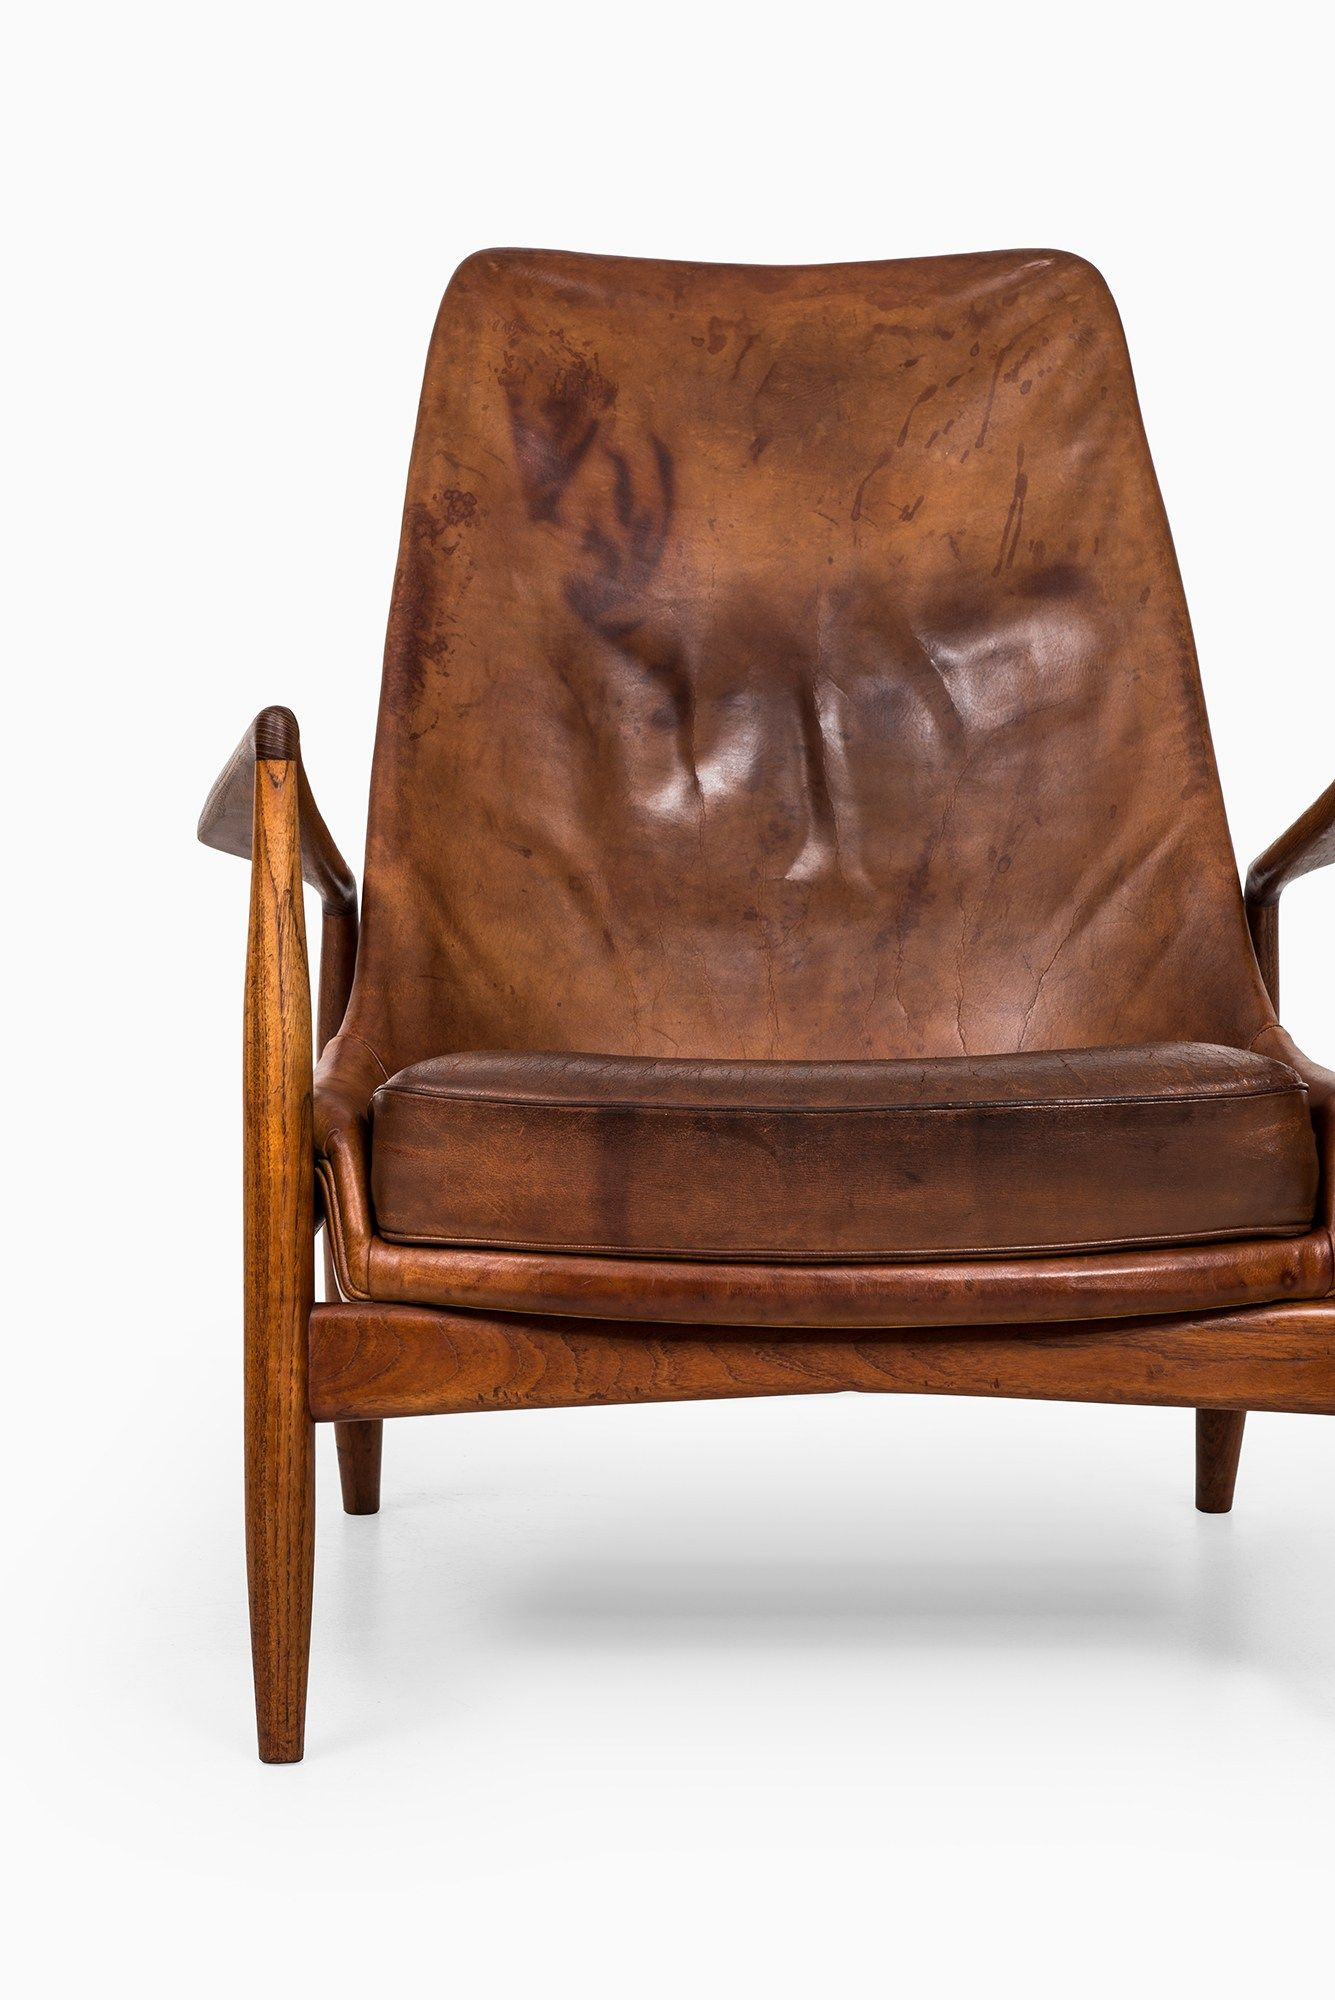 Sold Studio Schalling Leather Easy Chair Art Chair Easy Chair